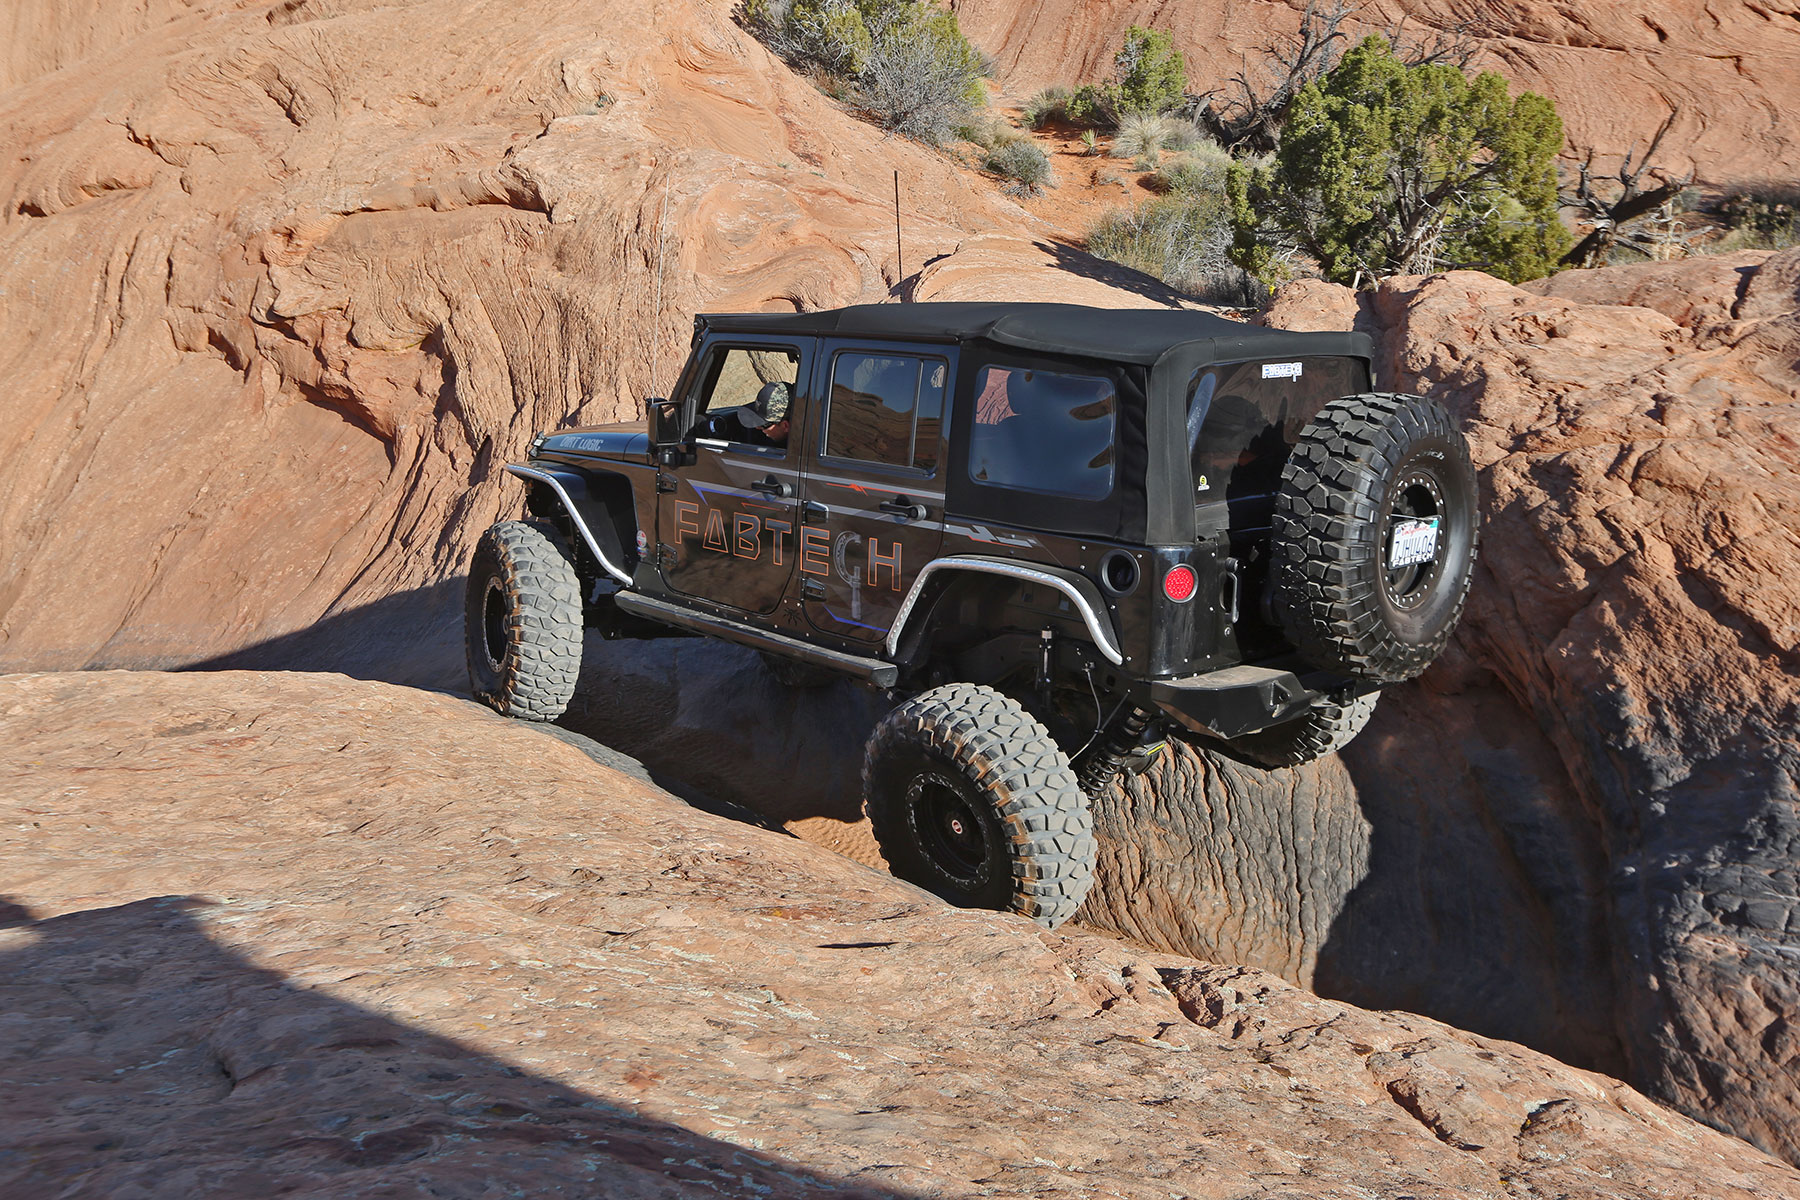 The Gang From Fabtech Share Their Moab Easter Jeep Safari 2016 ...